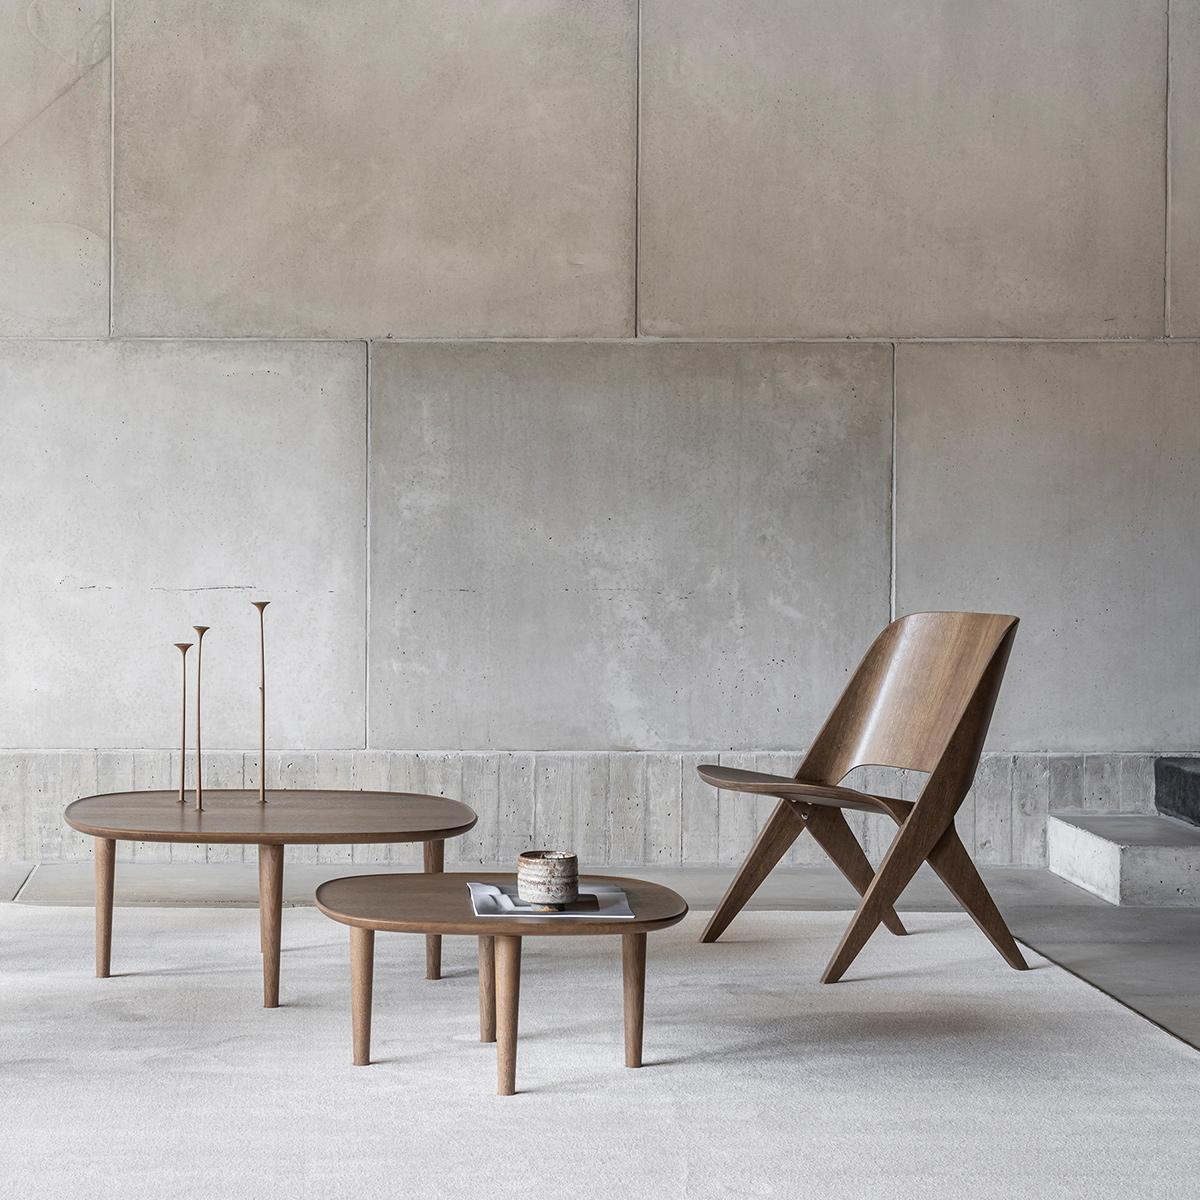 poiat-lavitta-lounge-chair-dark-oak-insitu-1-1200